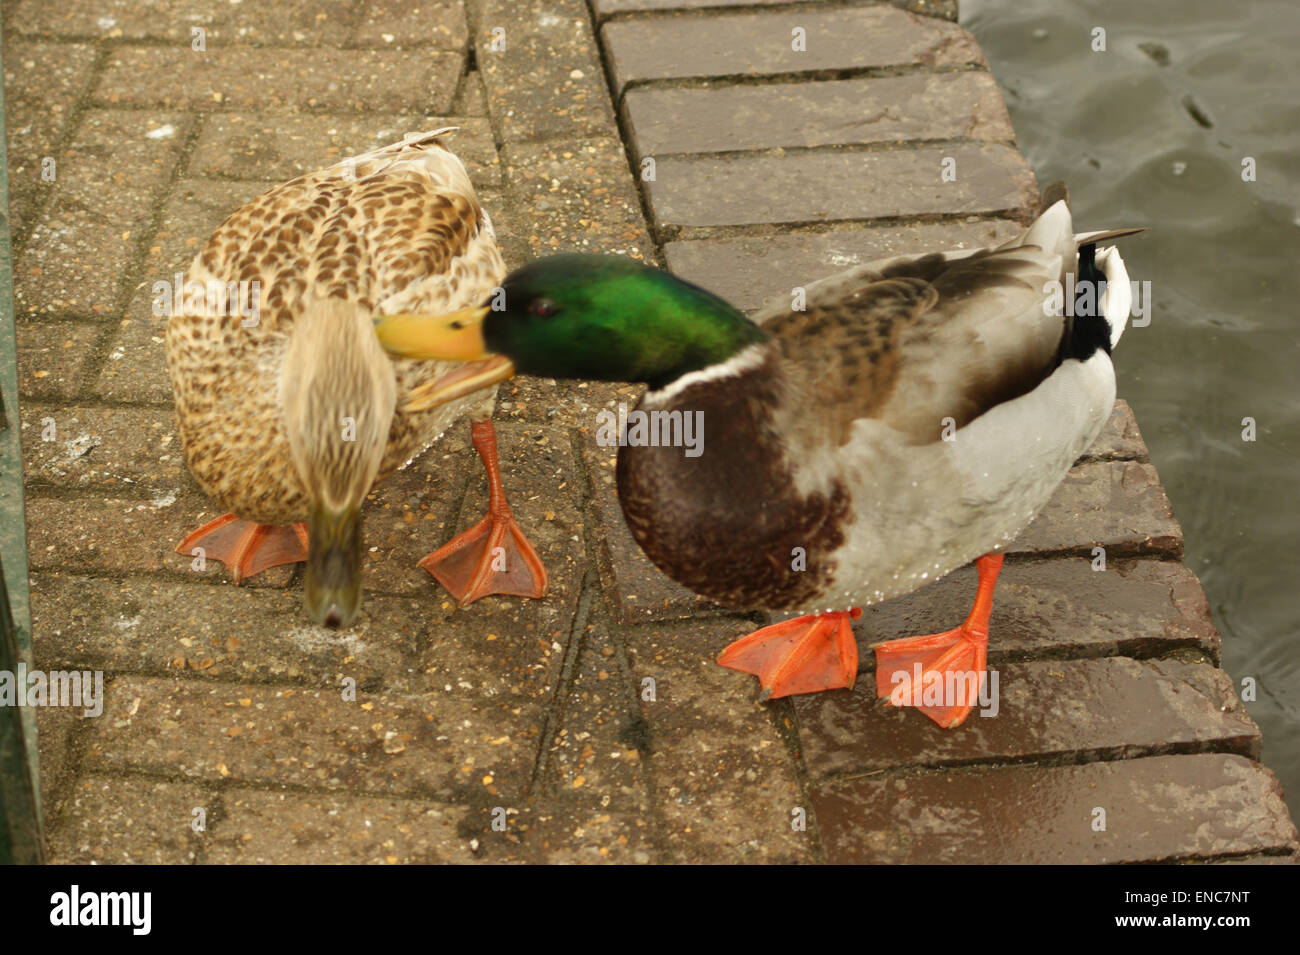 Male And Female Mallard Ducks The Suddenly Lashes Out At For No Good Reason London